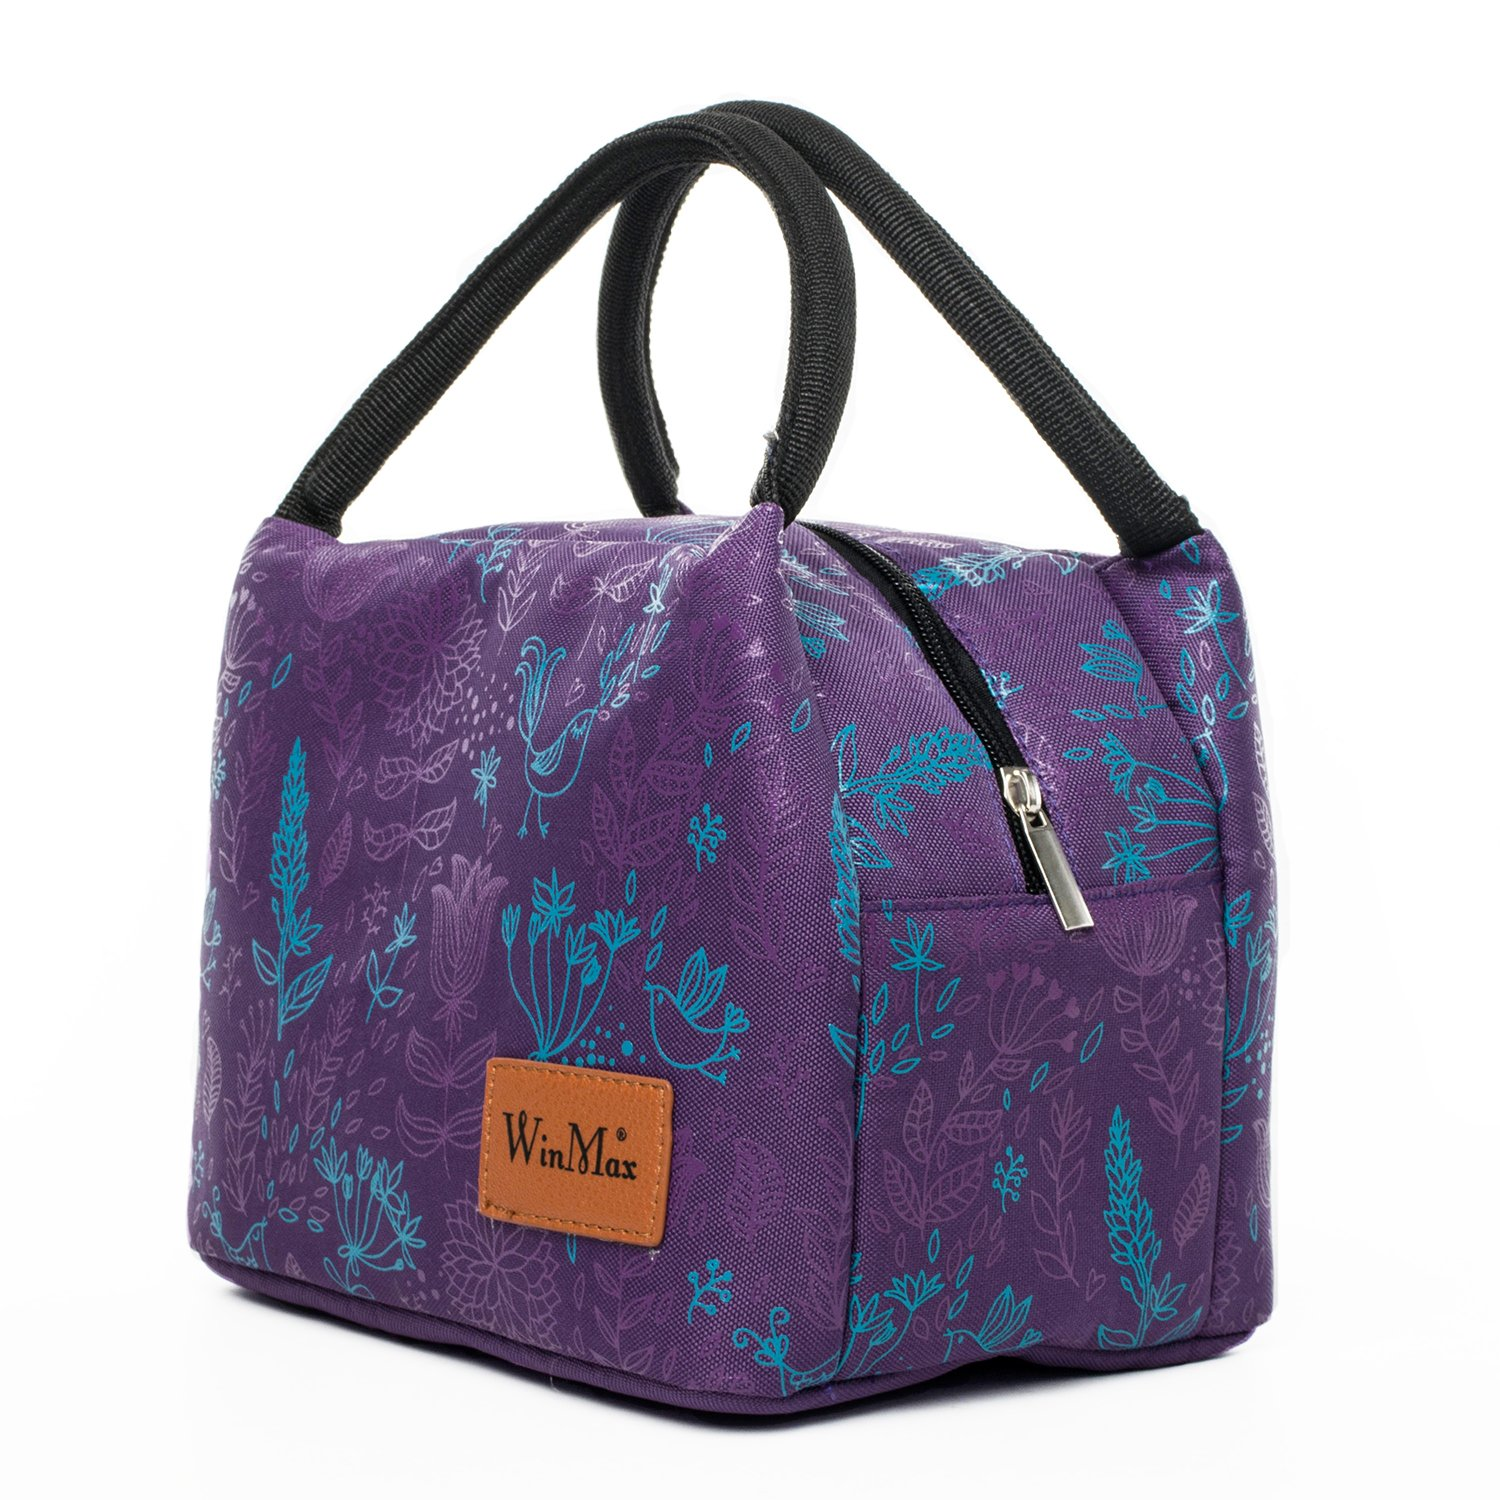 7e9c18c69c24 Winmax Insulated Lunch Box Bag, Portable Cooler Bag, Reusable Lunch Tote  Bag for Women (Purple)